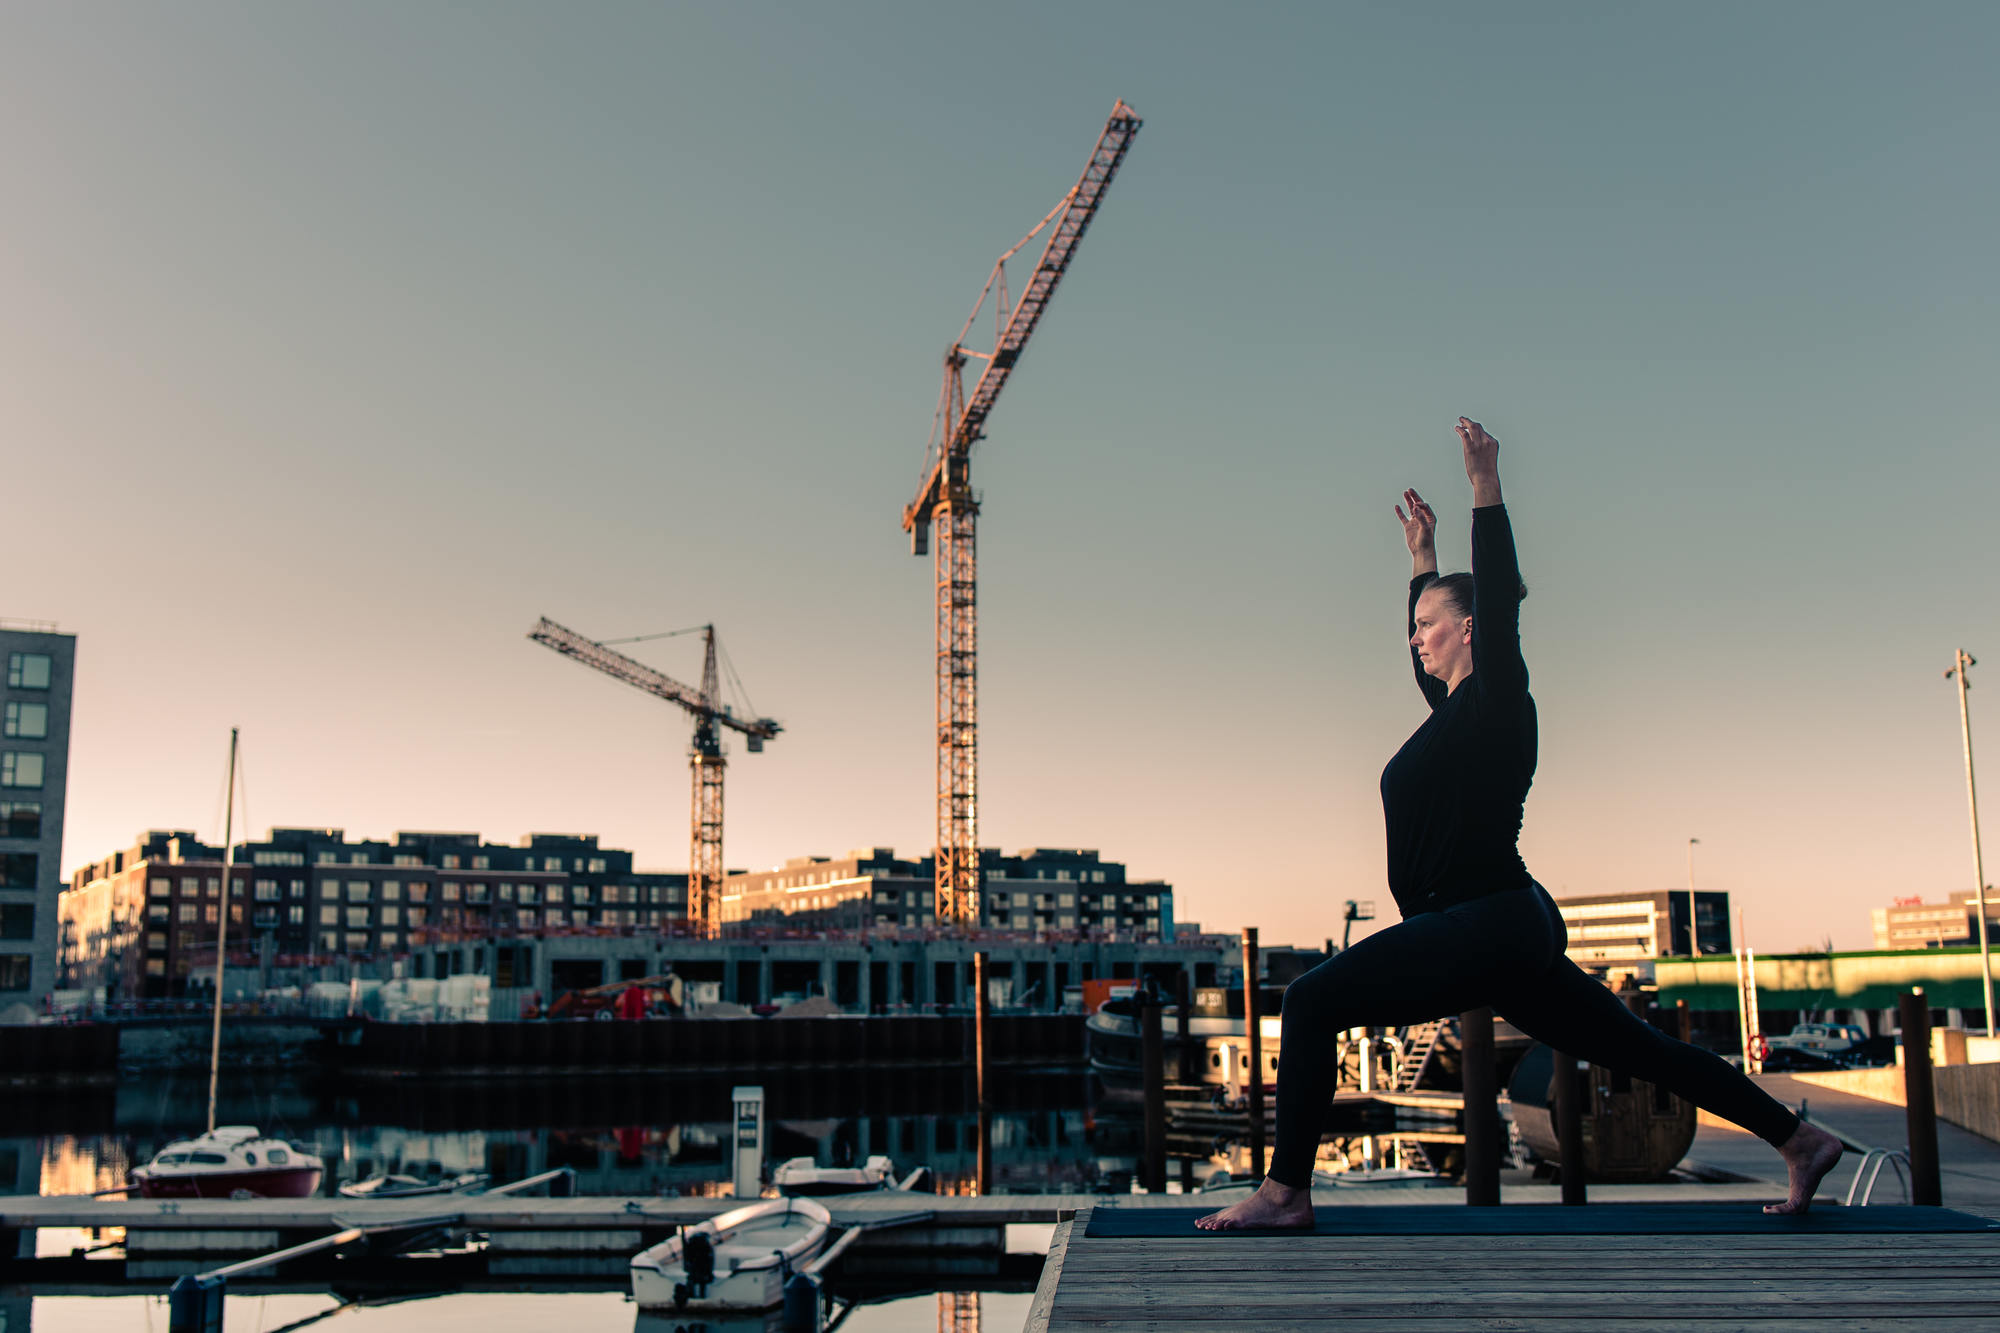 urban-yoga-photoshoot-copenhagen-silhouettes-poses-22